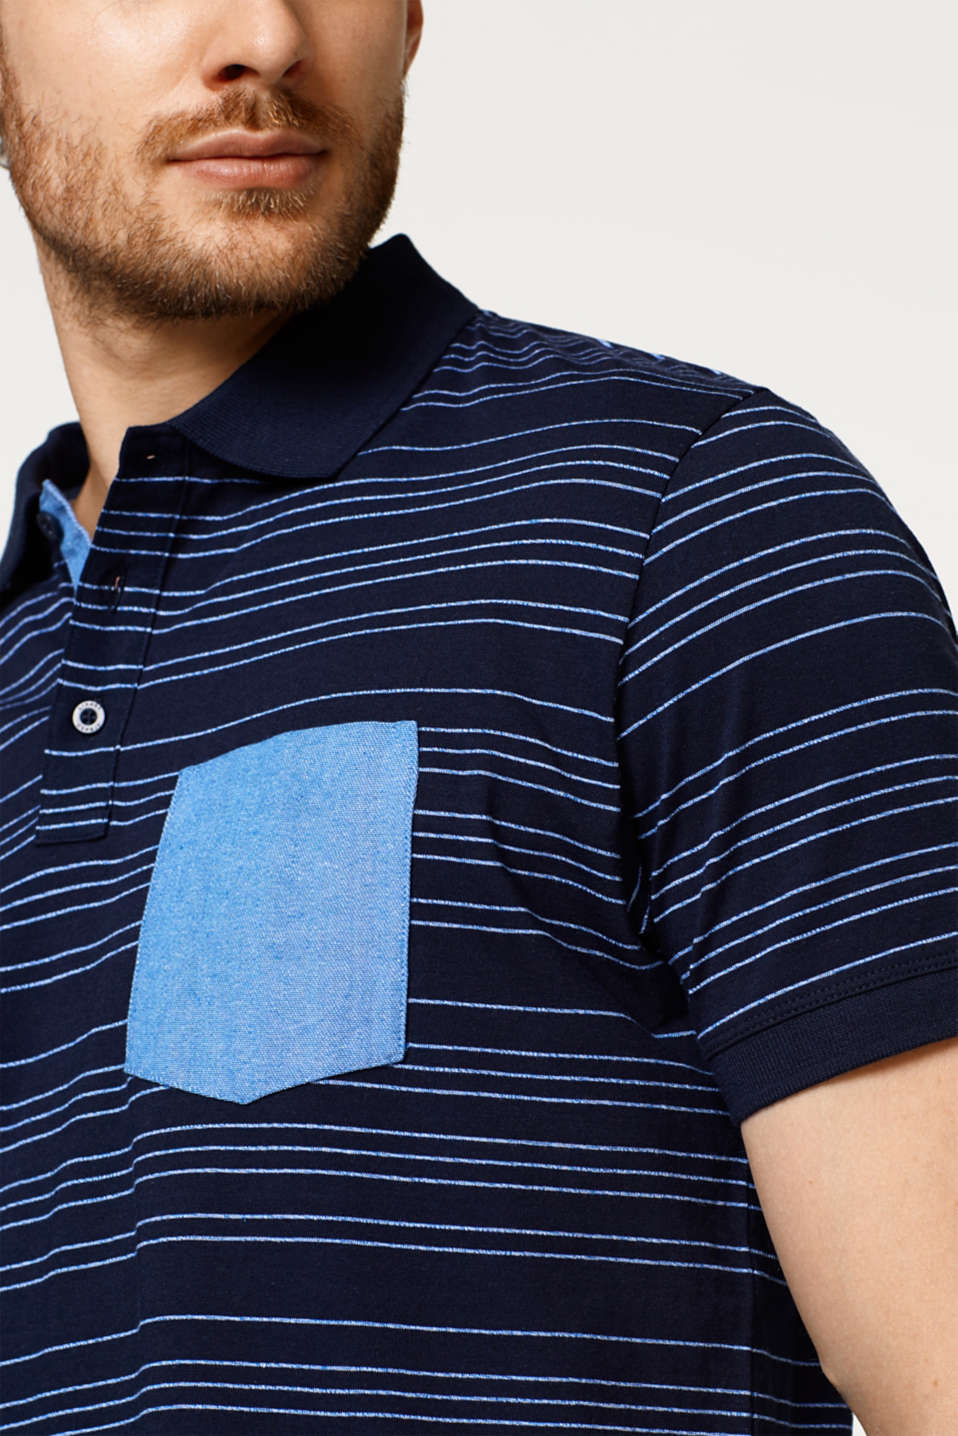 Jersey polo shirt with stripes, 100% cotton